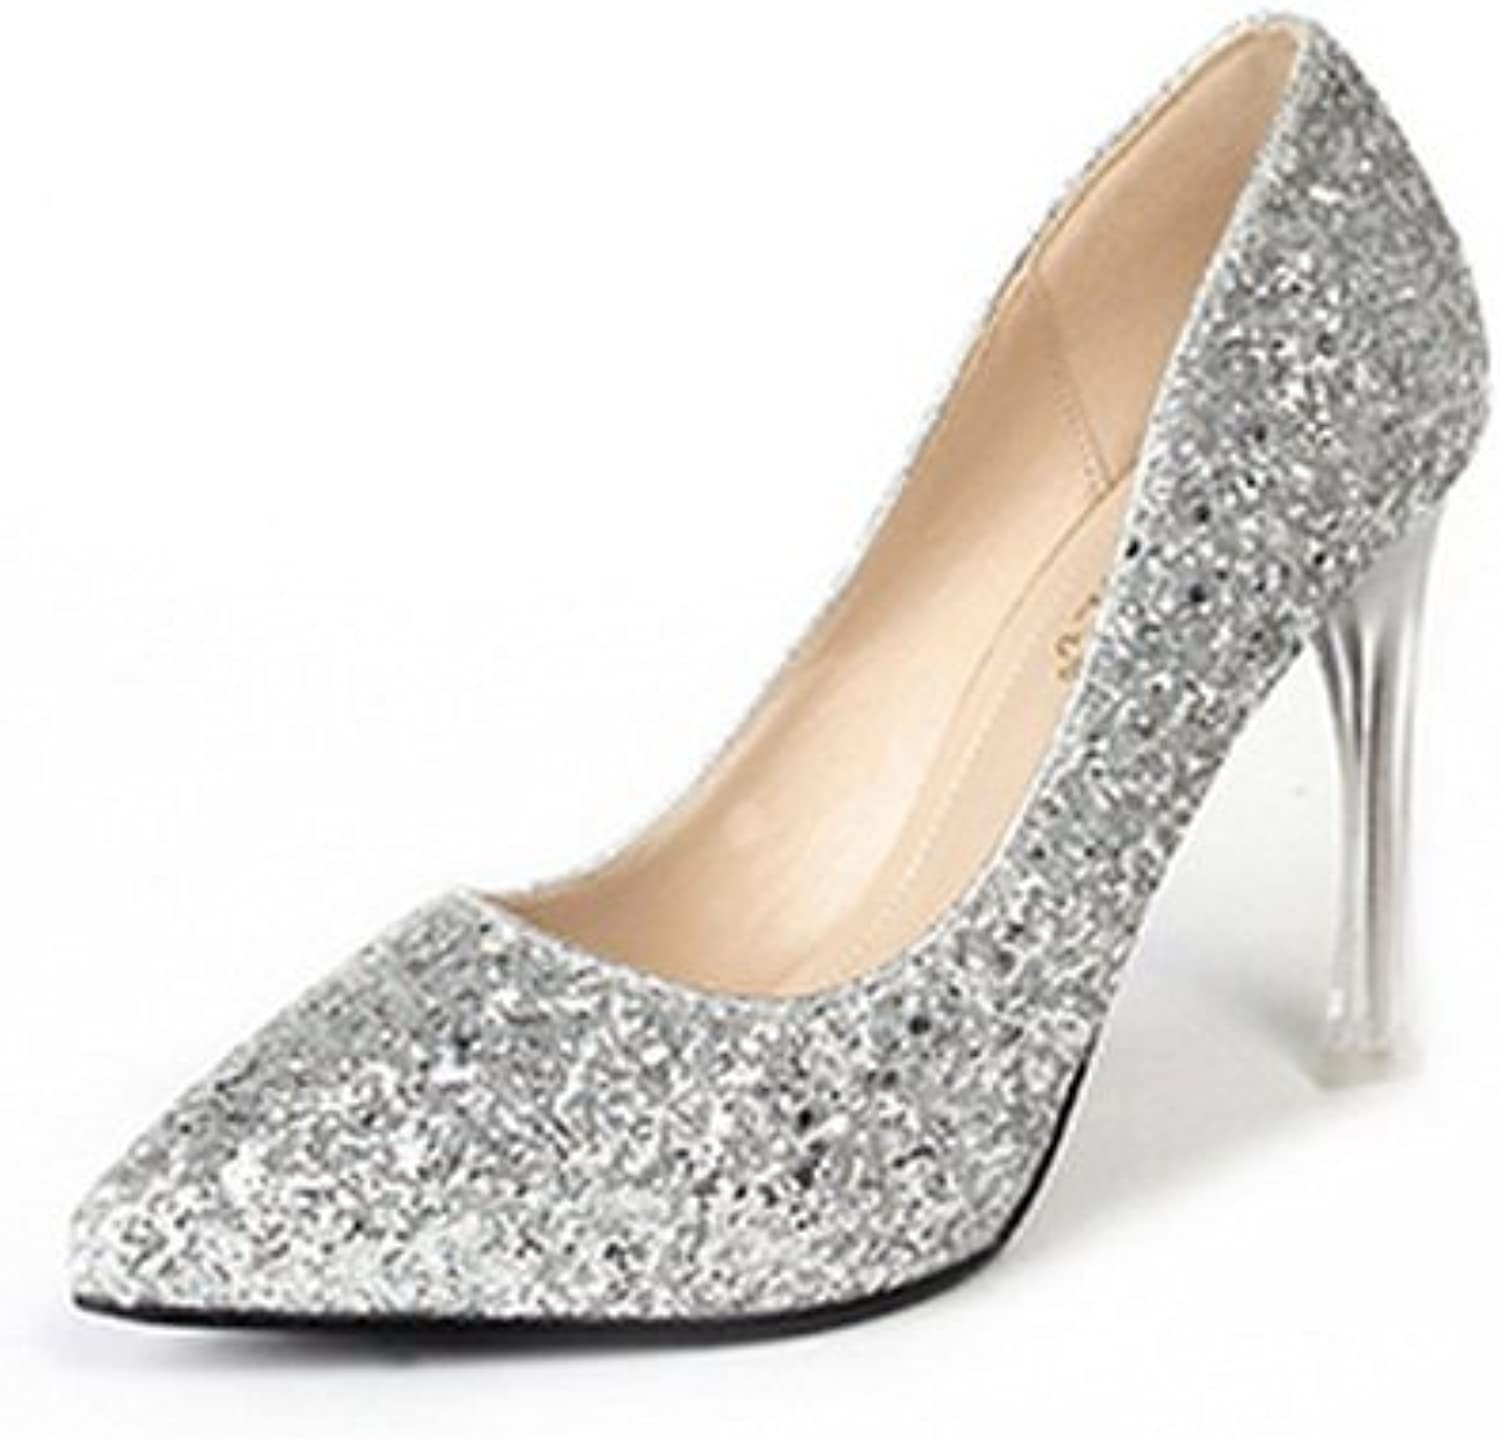 1TO9 Womens Glitter Spikes Stilettos Low-Cut Uppers Urethane Pumps shoes